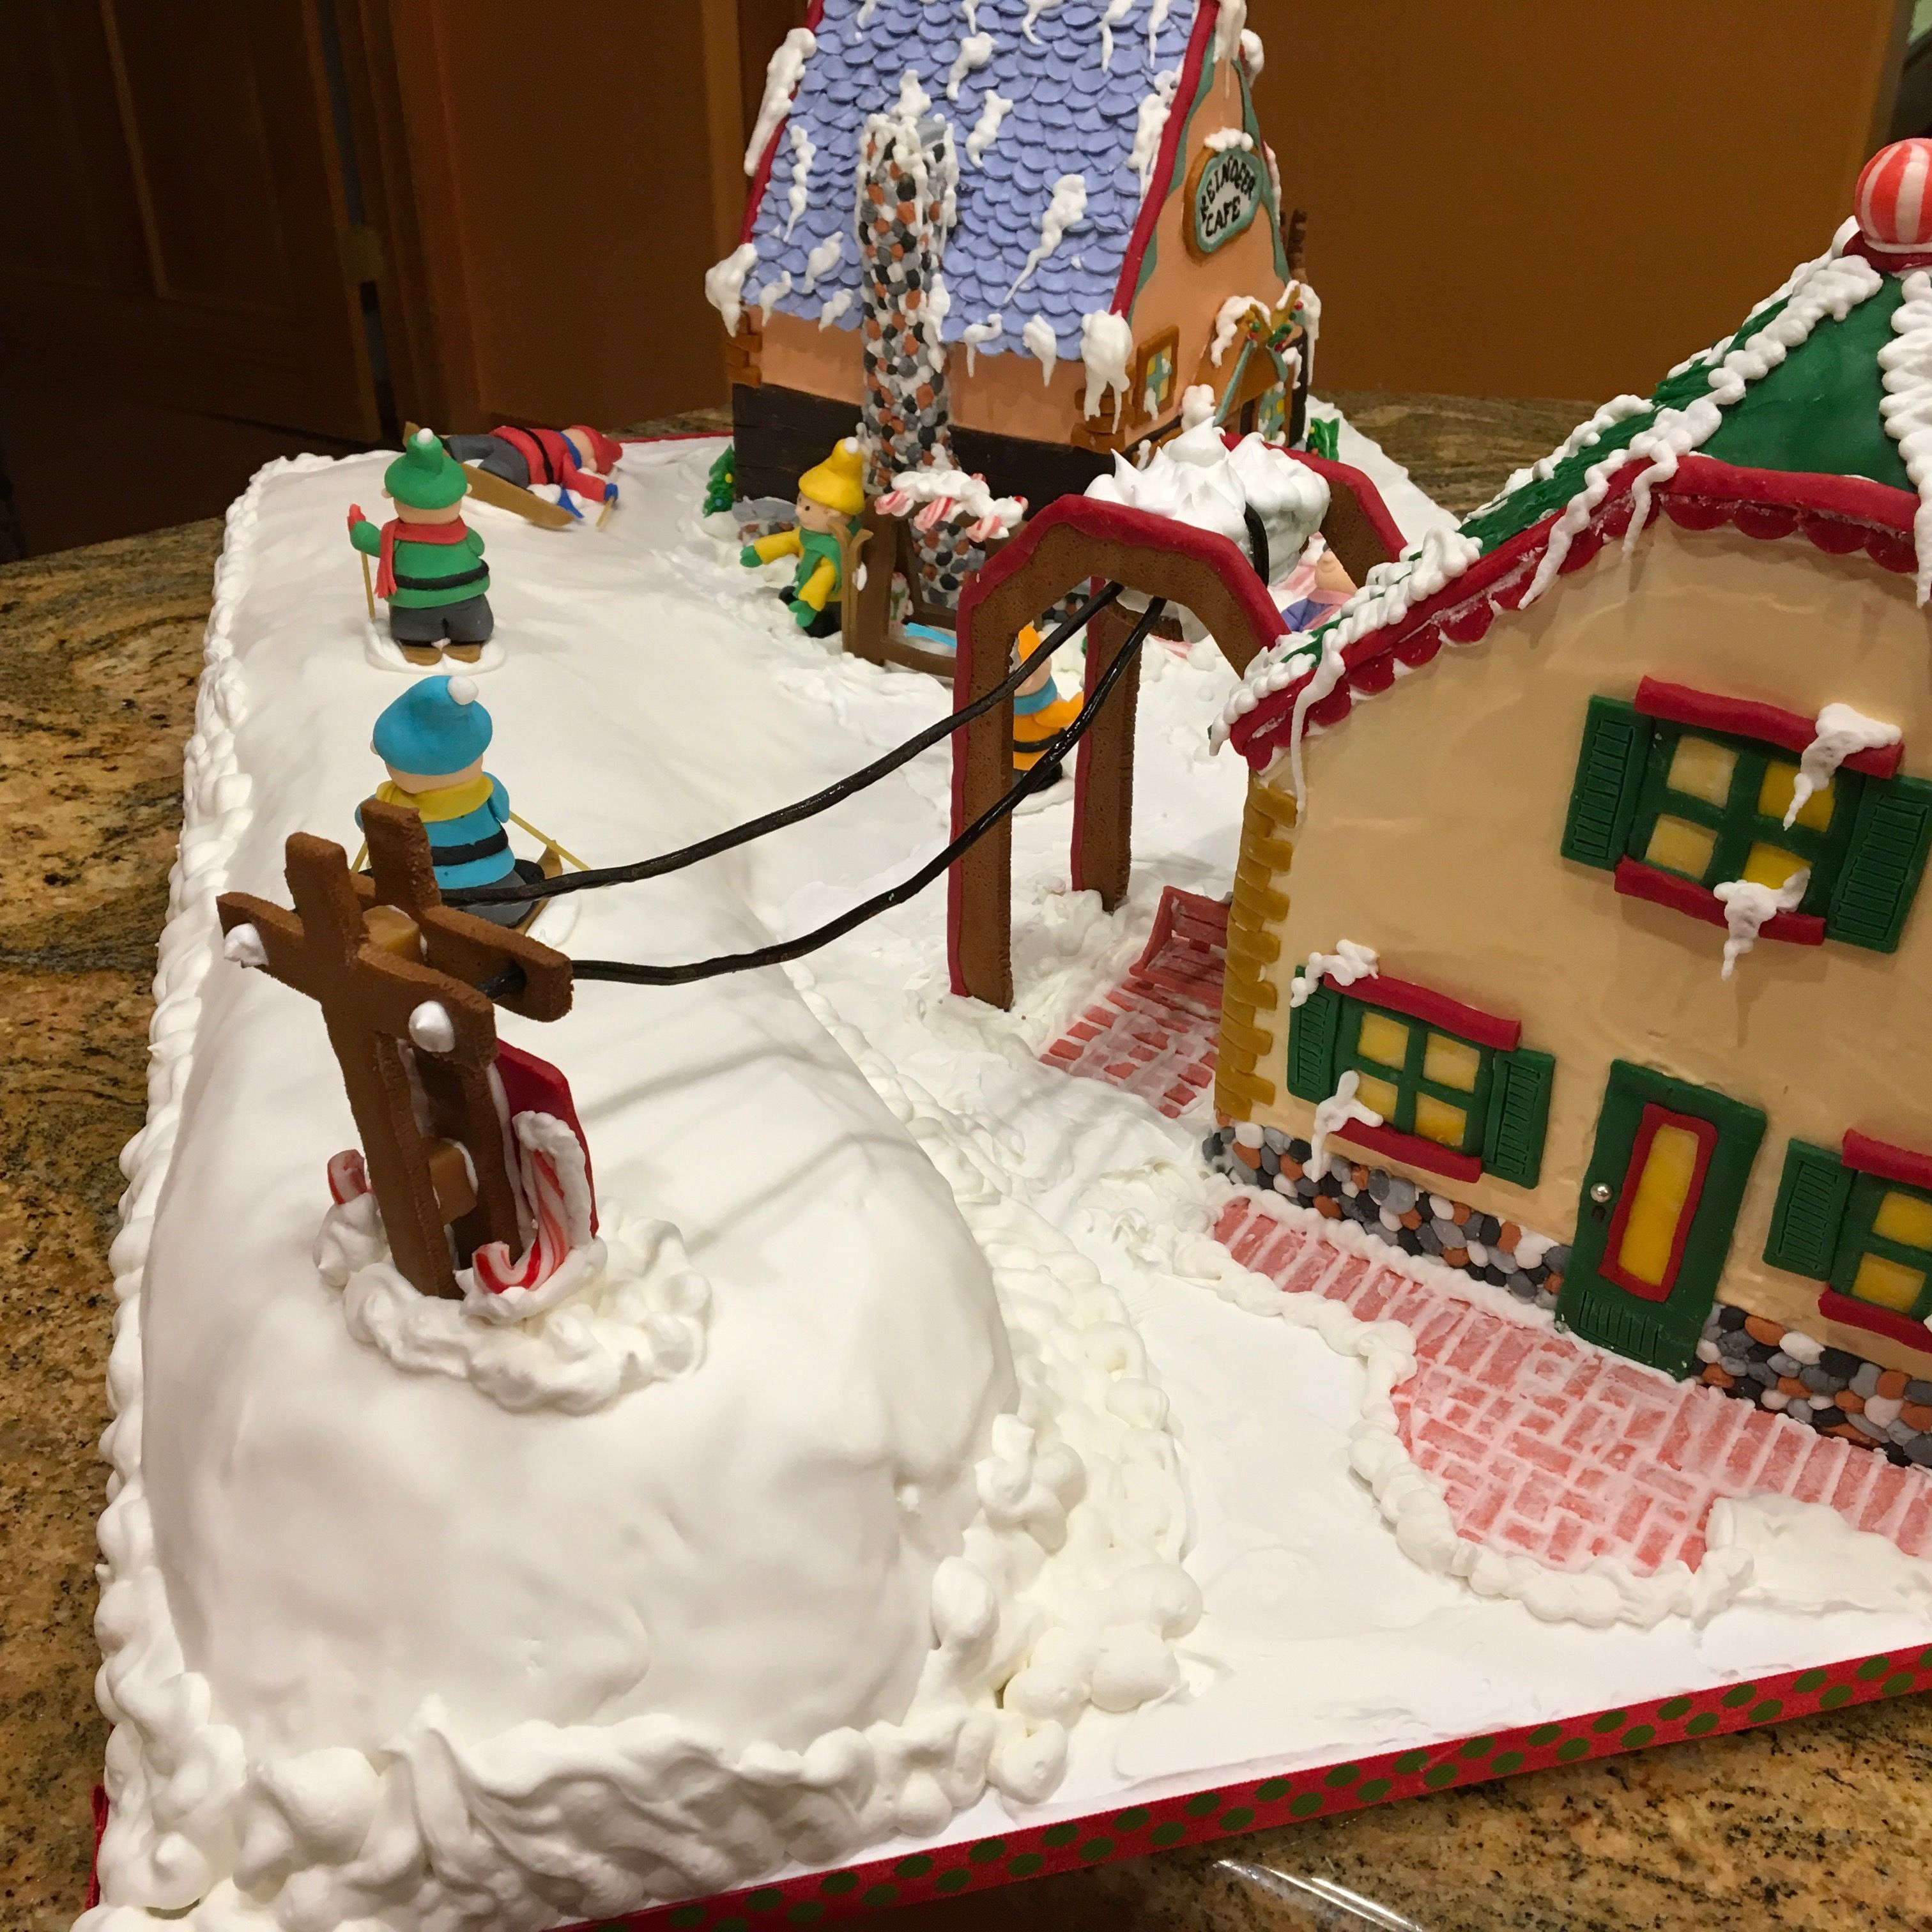 Pin By L Lyle On My Gingerbread Designs Gingerbread House Gingerbread Cake